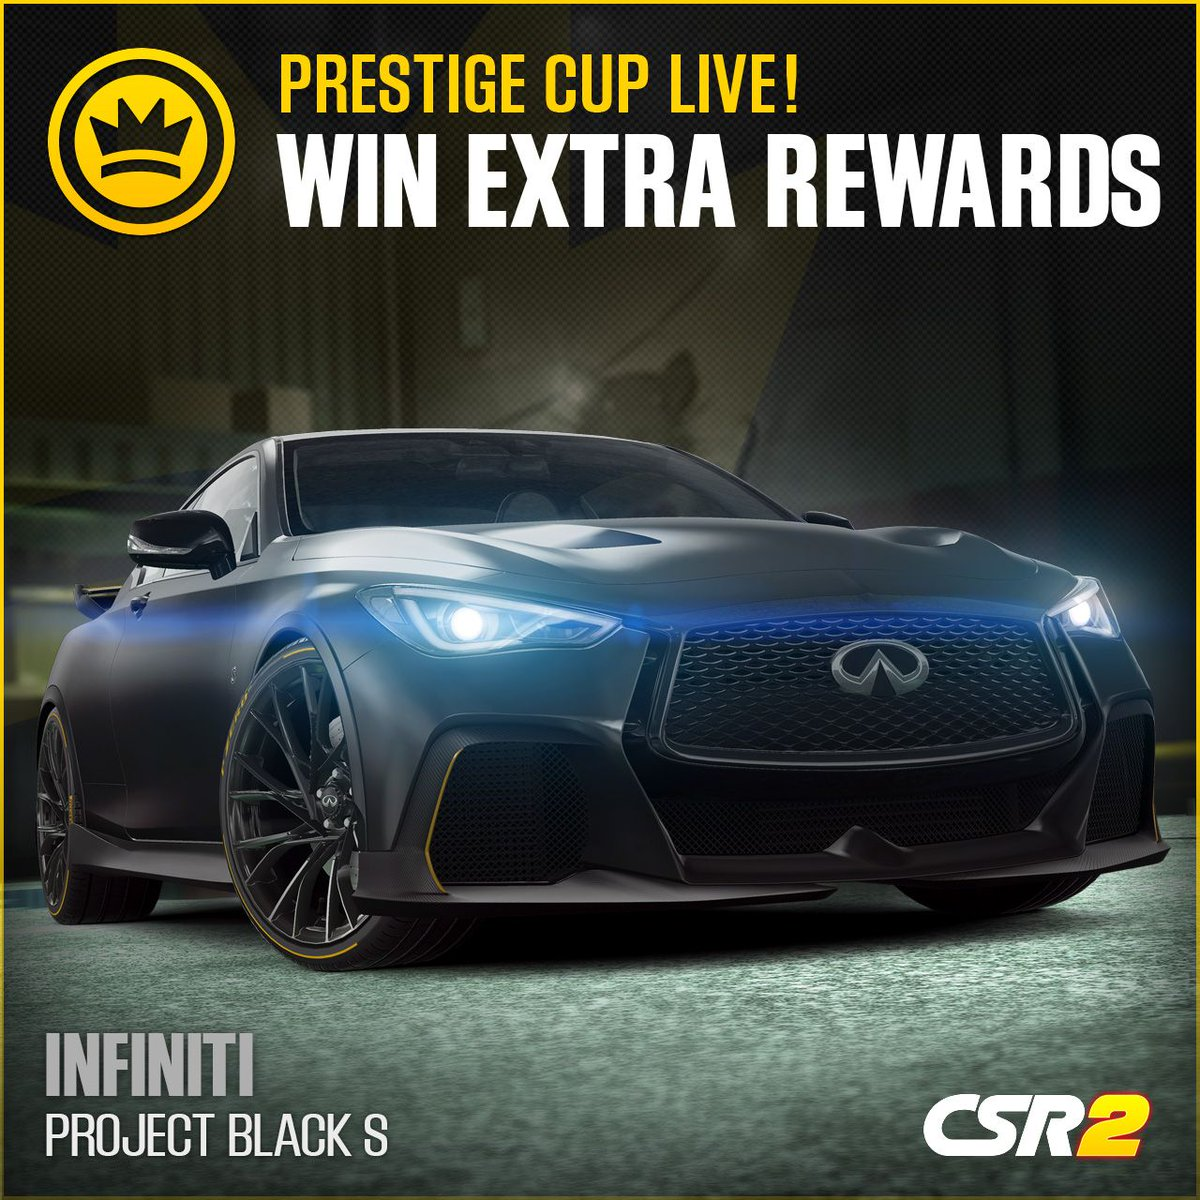 The Infiniti Q60 Project Black S is a balance of design and innovative technology. You got what it takes? #CSR2 https://t.co/dj9FRCQj2i